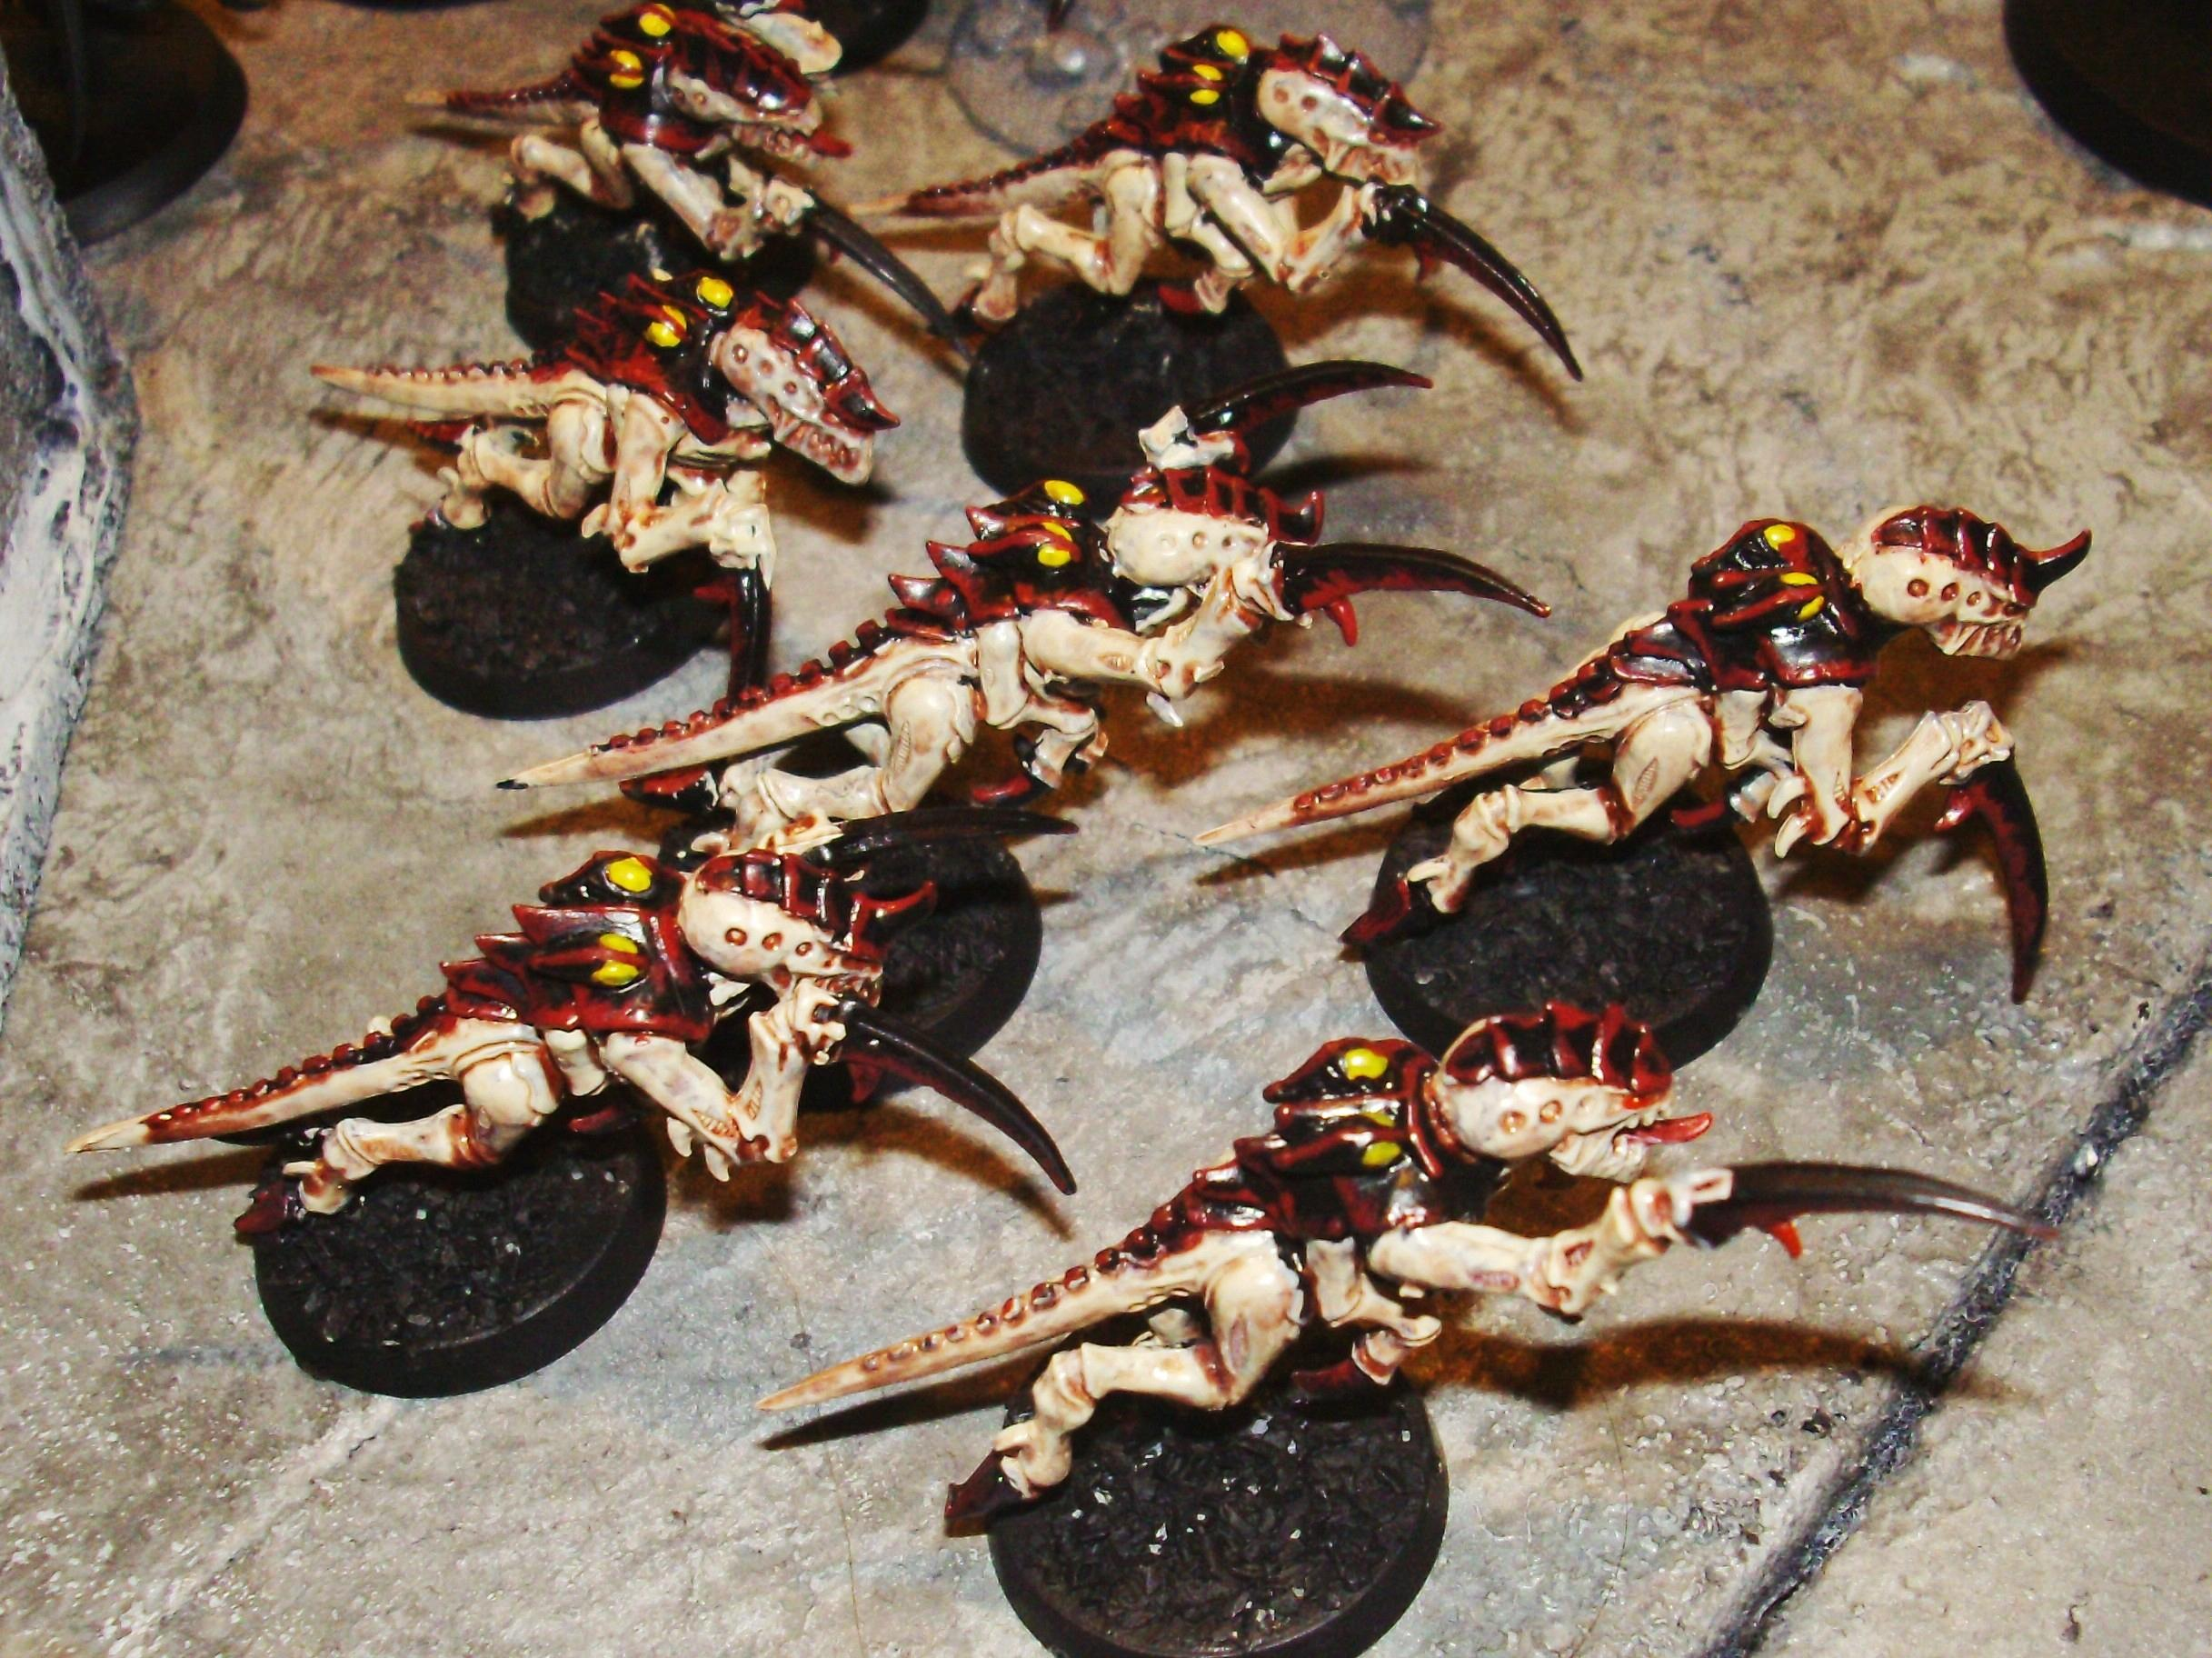 Tyranids, The only painted tyranid squad I have- Some hormagaunts